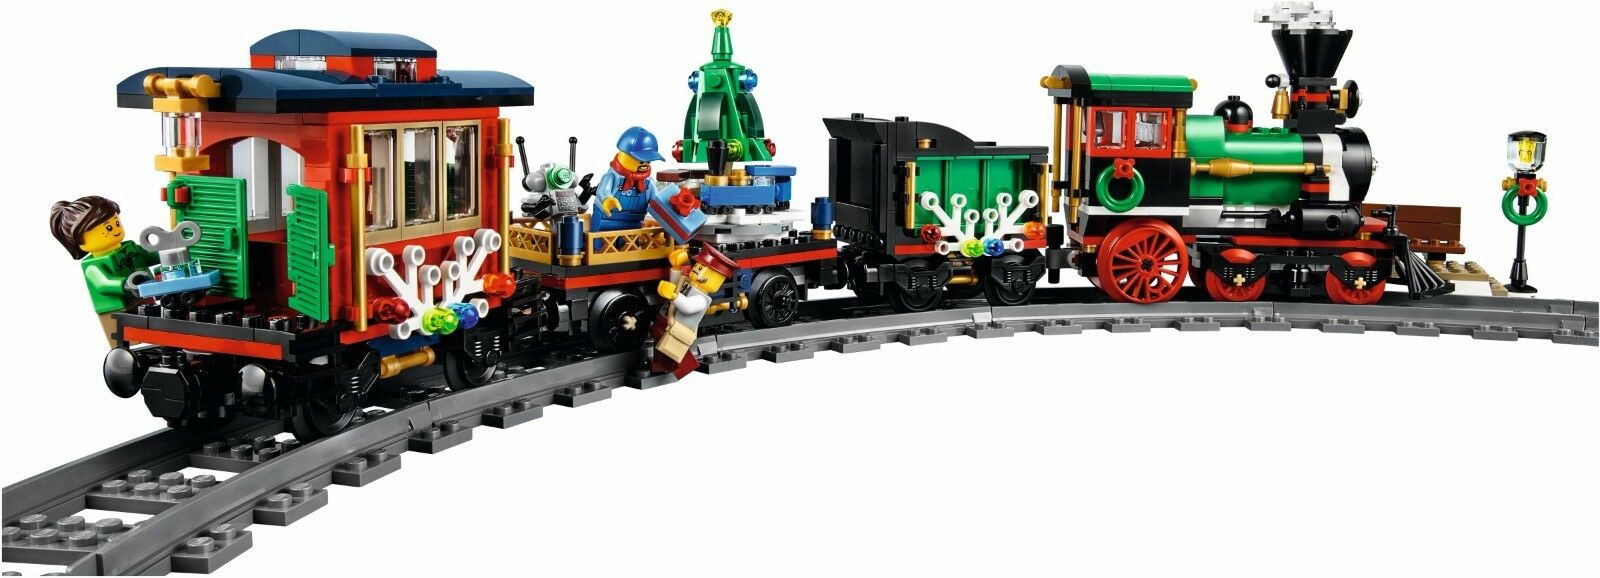 NEW Lego Christmas Theme Set  2x 10254 Winter Holiday Holiday Holiday Trains EXCLUSIVE 844839